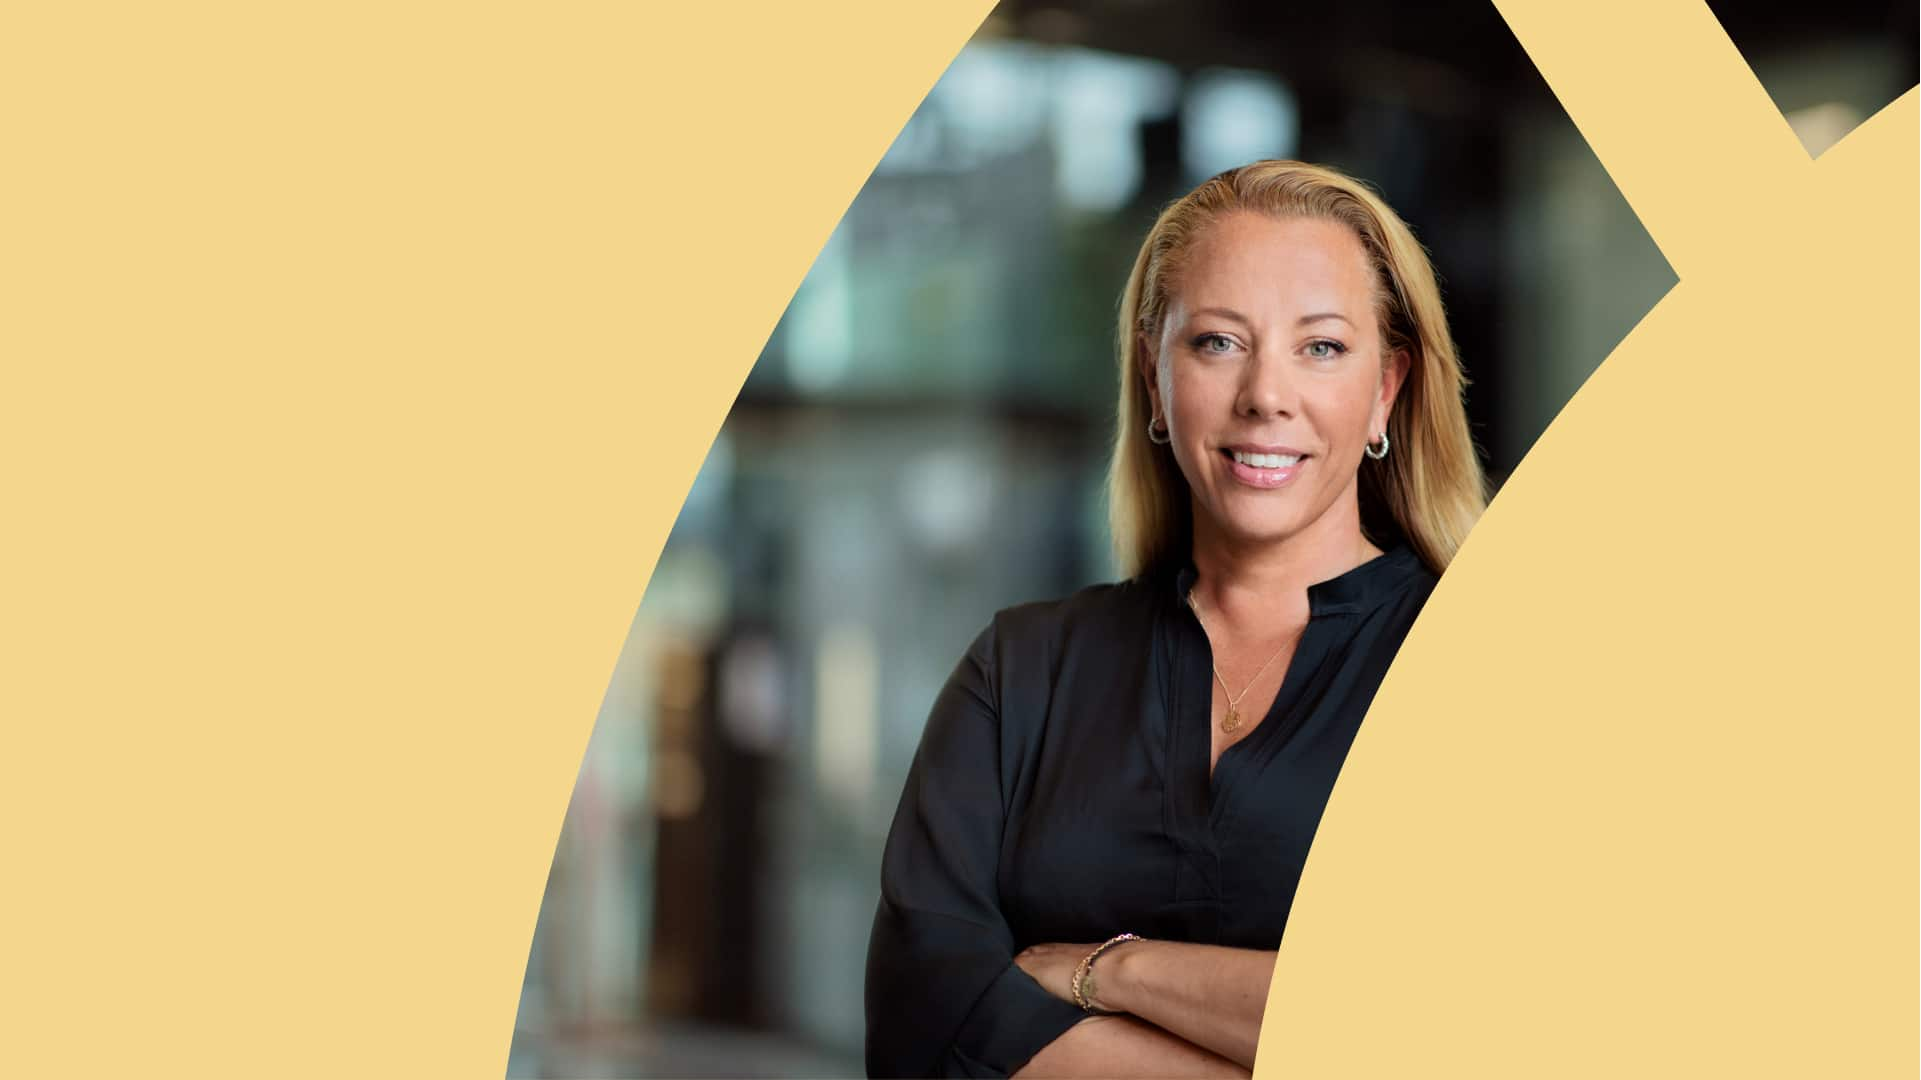 Image of Anna Mossberg, leader of Silo AI Sweden